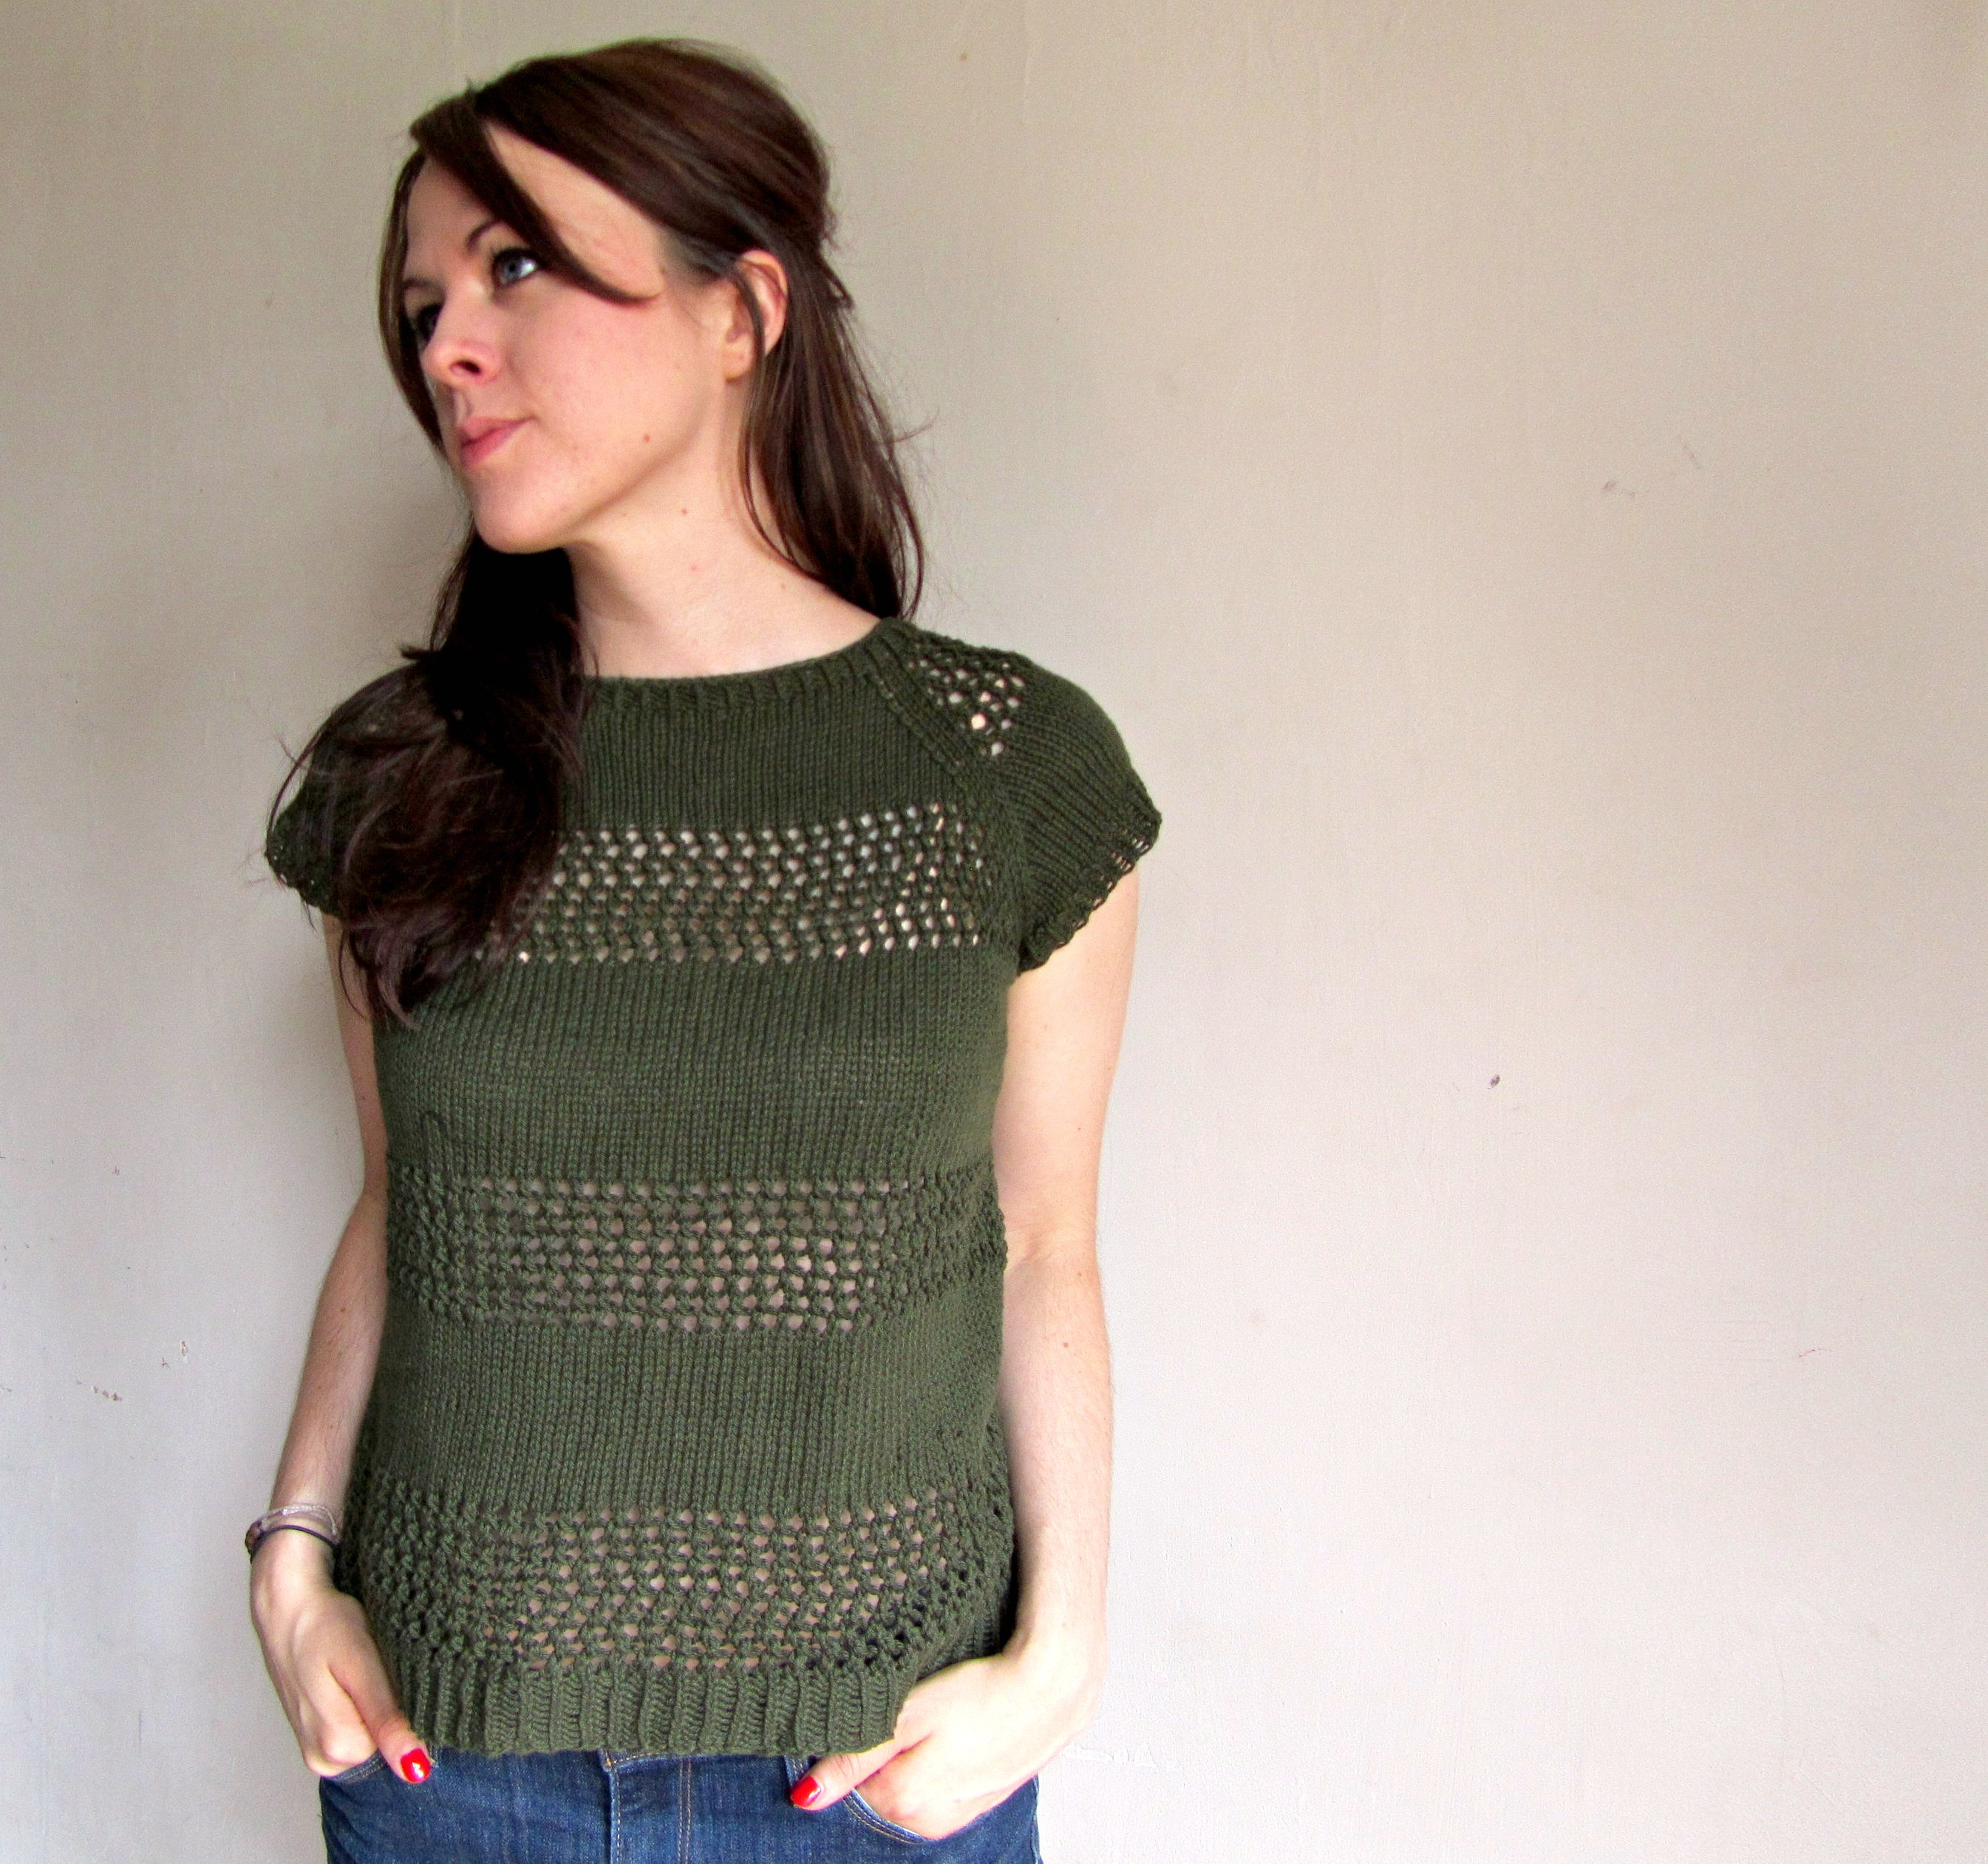 Knitting Pattern Striped Sweater : Image from http://www.aknittingblog.com/wp-content/uploads ...